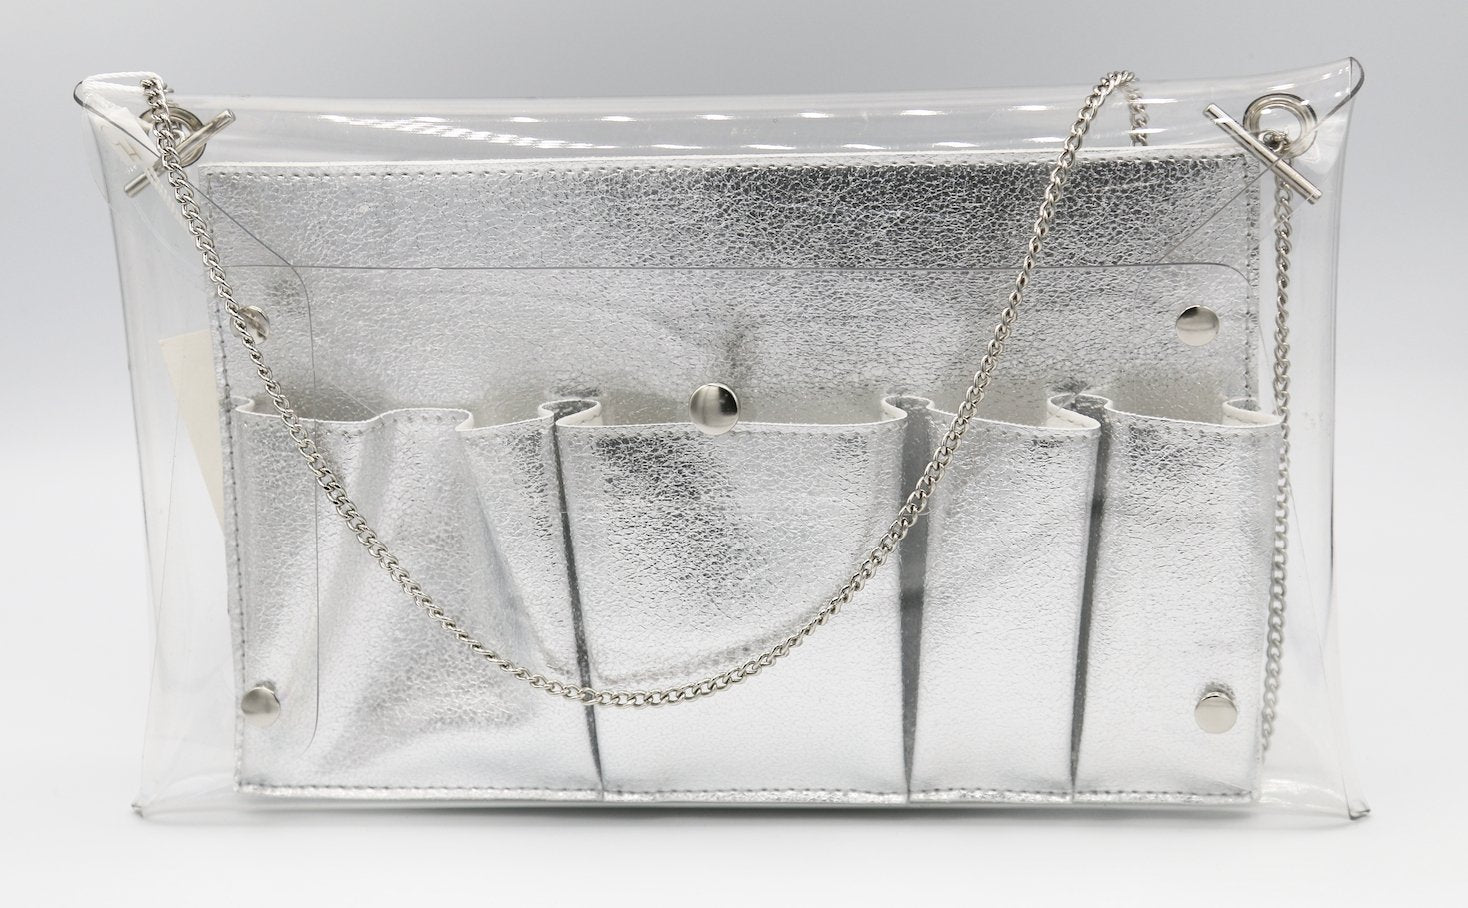 TOUCHDOWN CLEAR CROSSBODY WITH REMOVABLE INNER COMPARTMENT INCLUDED P41B-P12100-S - Molly's! A Chic and Unique Boutique